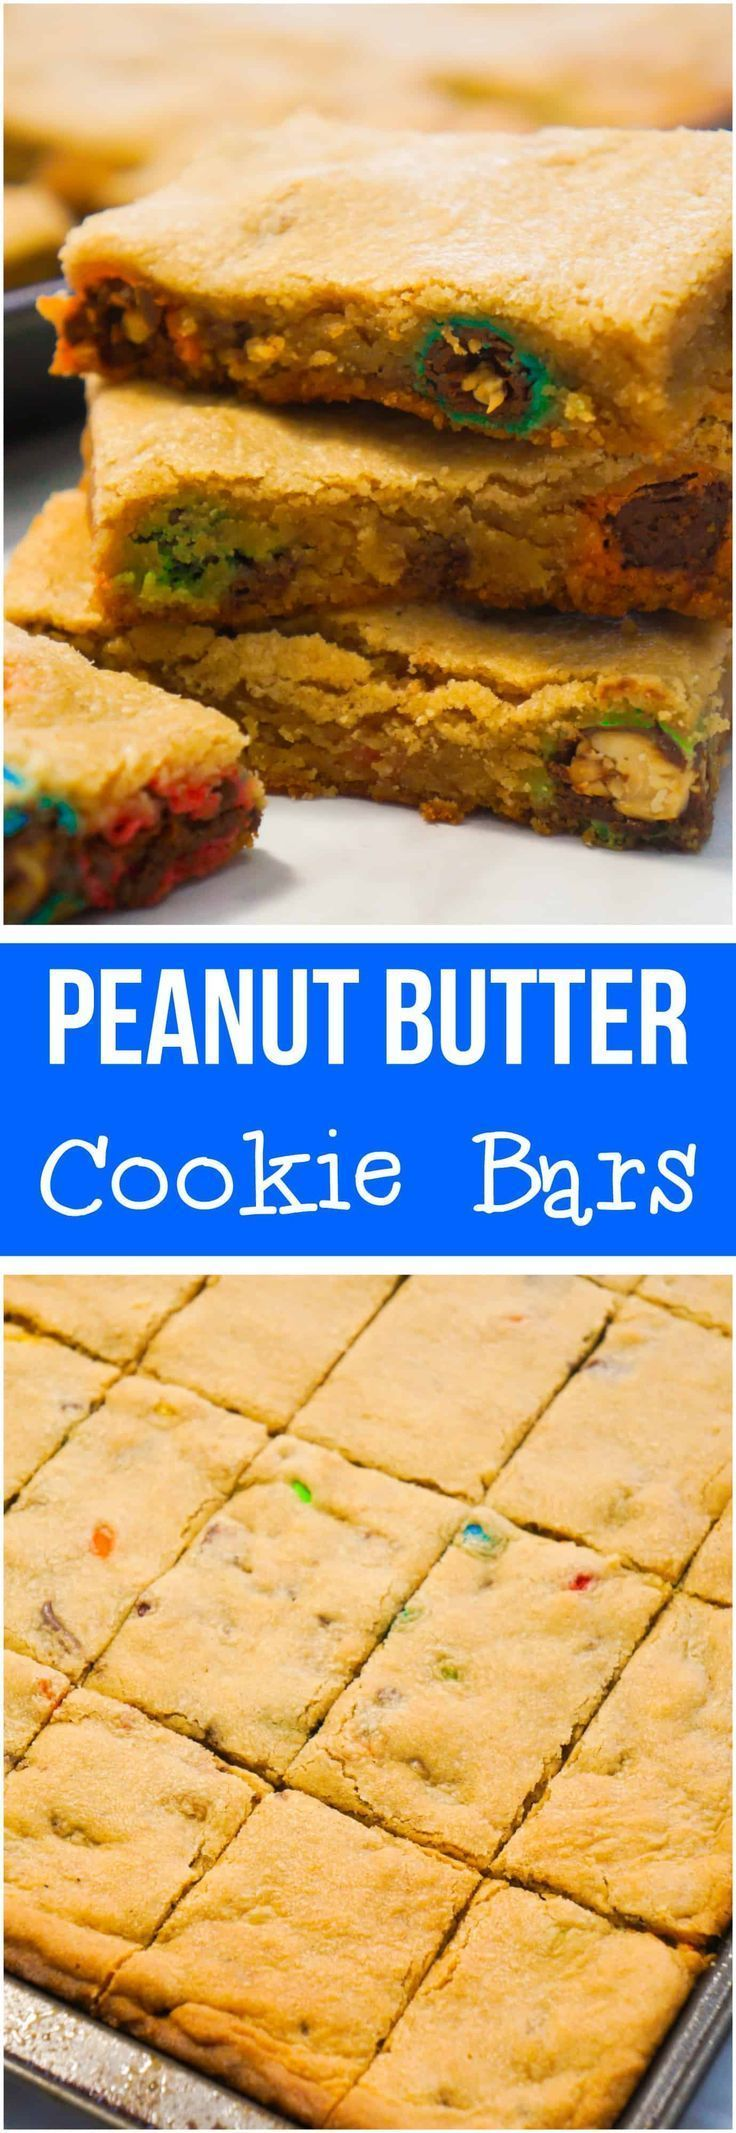 Peanut Butter Cookie Bars loaded with Reese's …